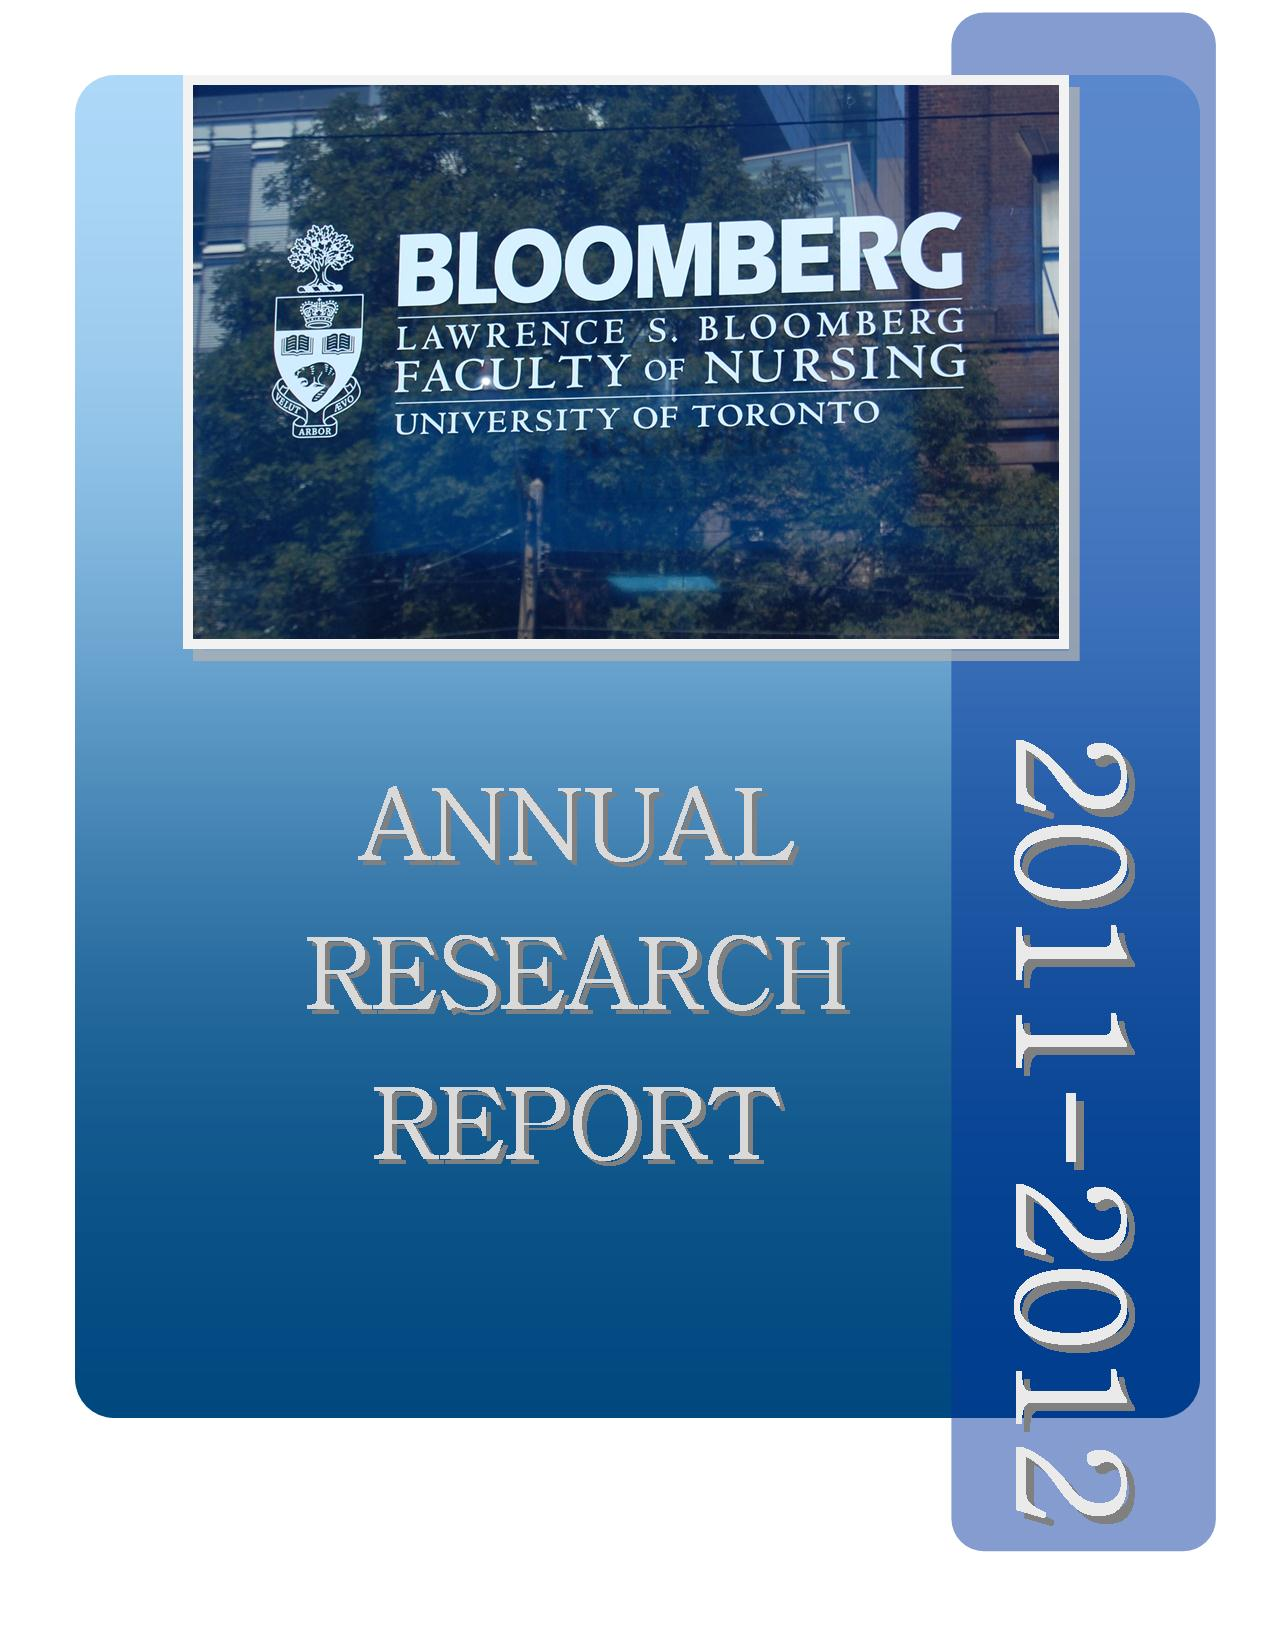 2011-2012 Research Report